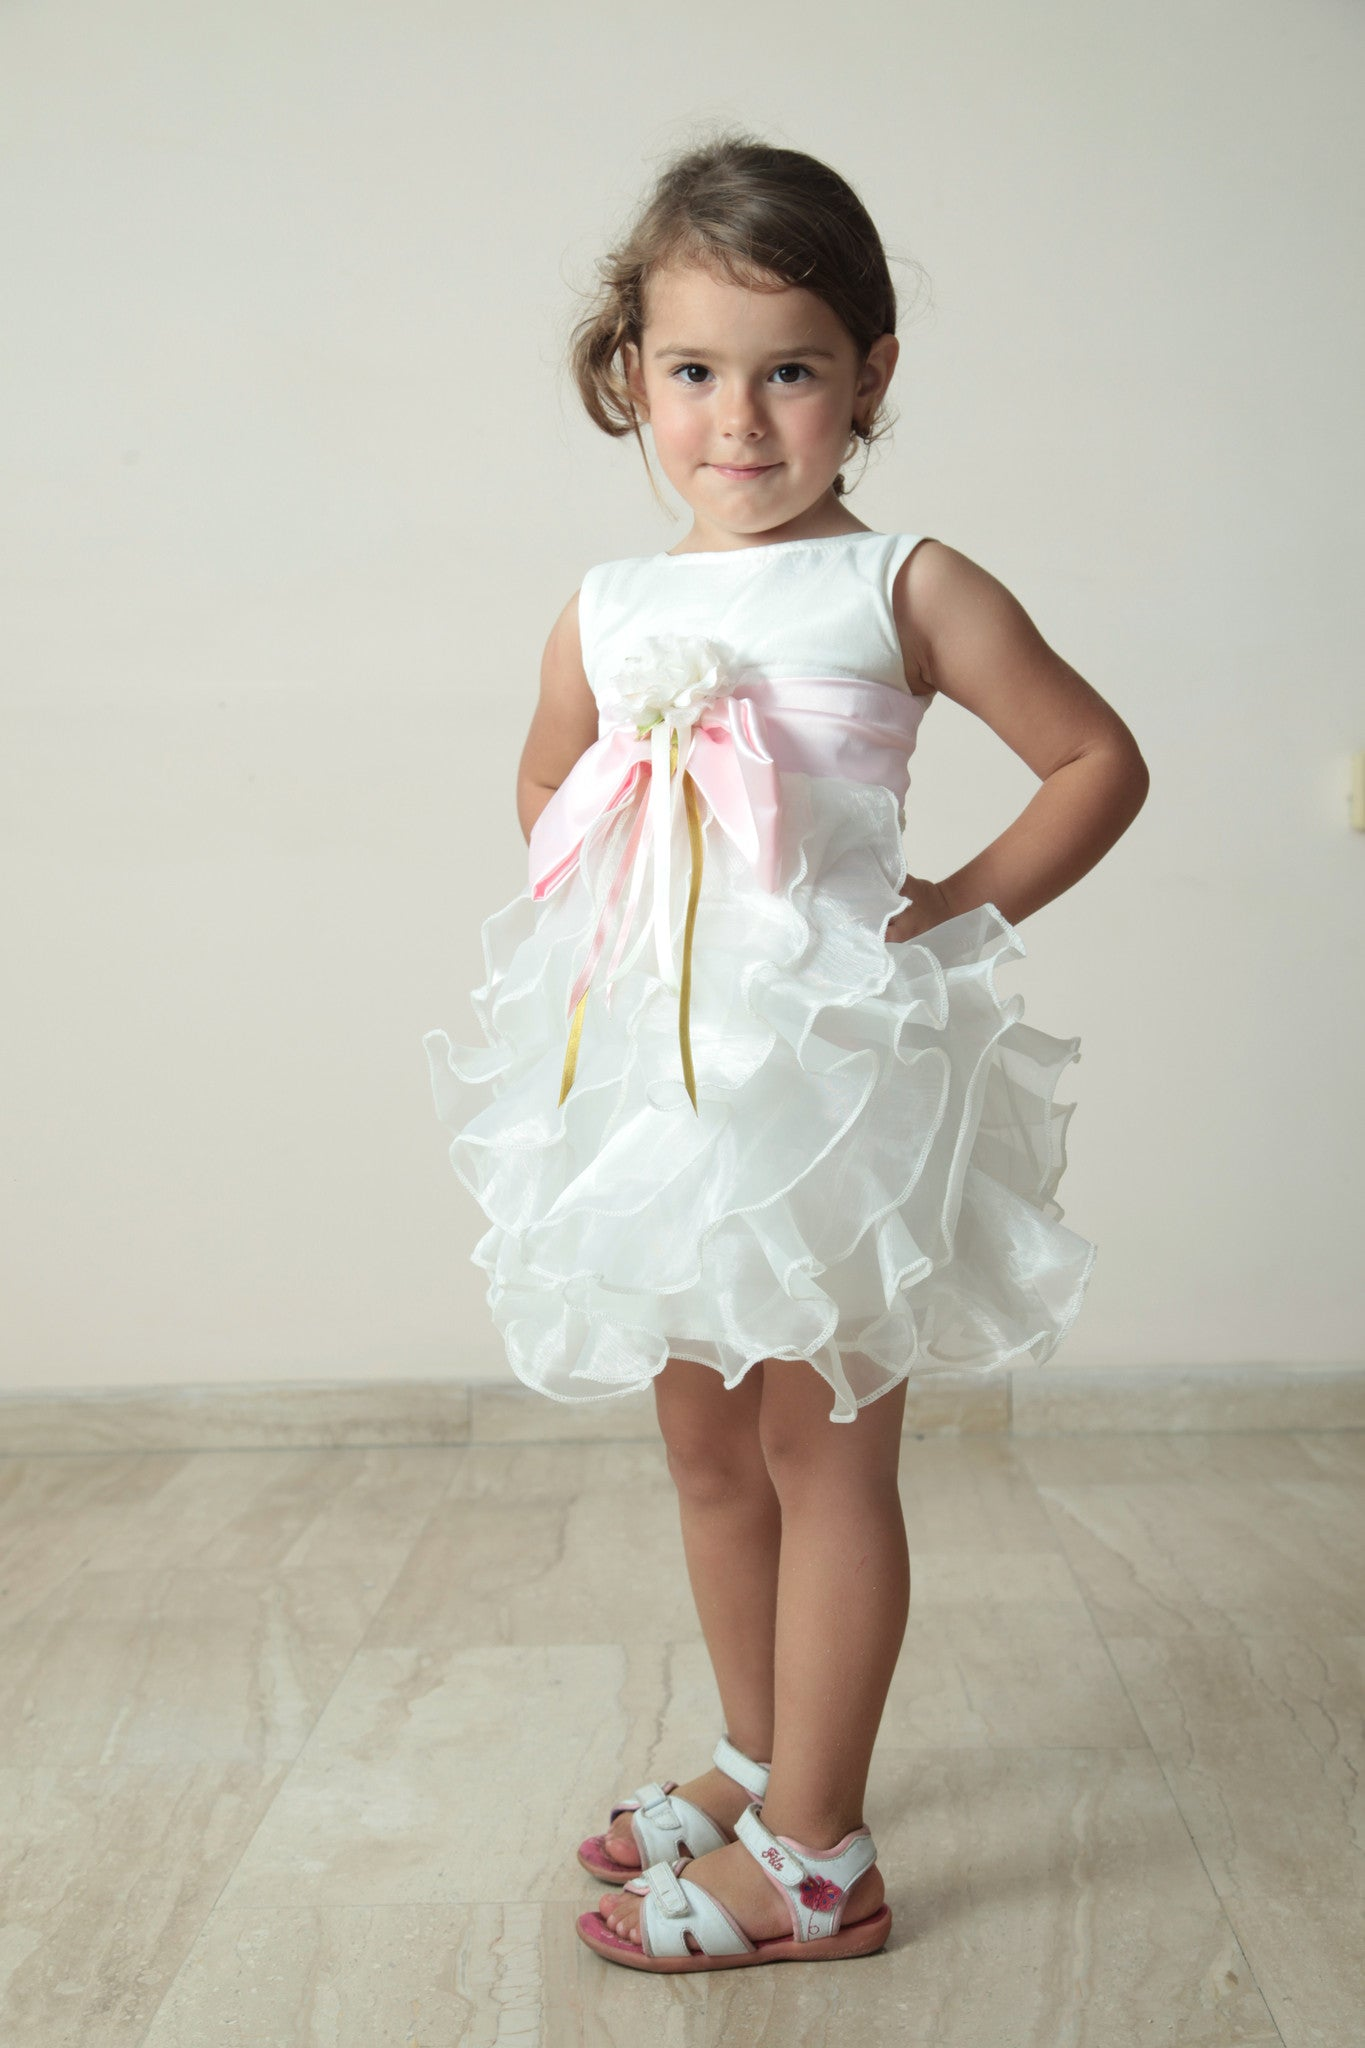 eBook: Fancy Dresses for Girls Aged 3 and Under, eBook, Corset Academy